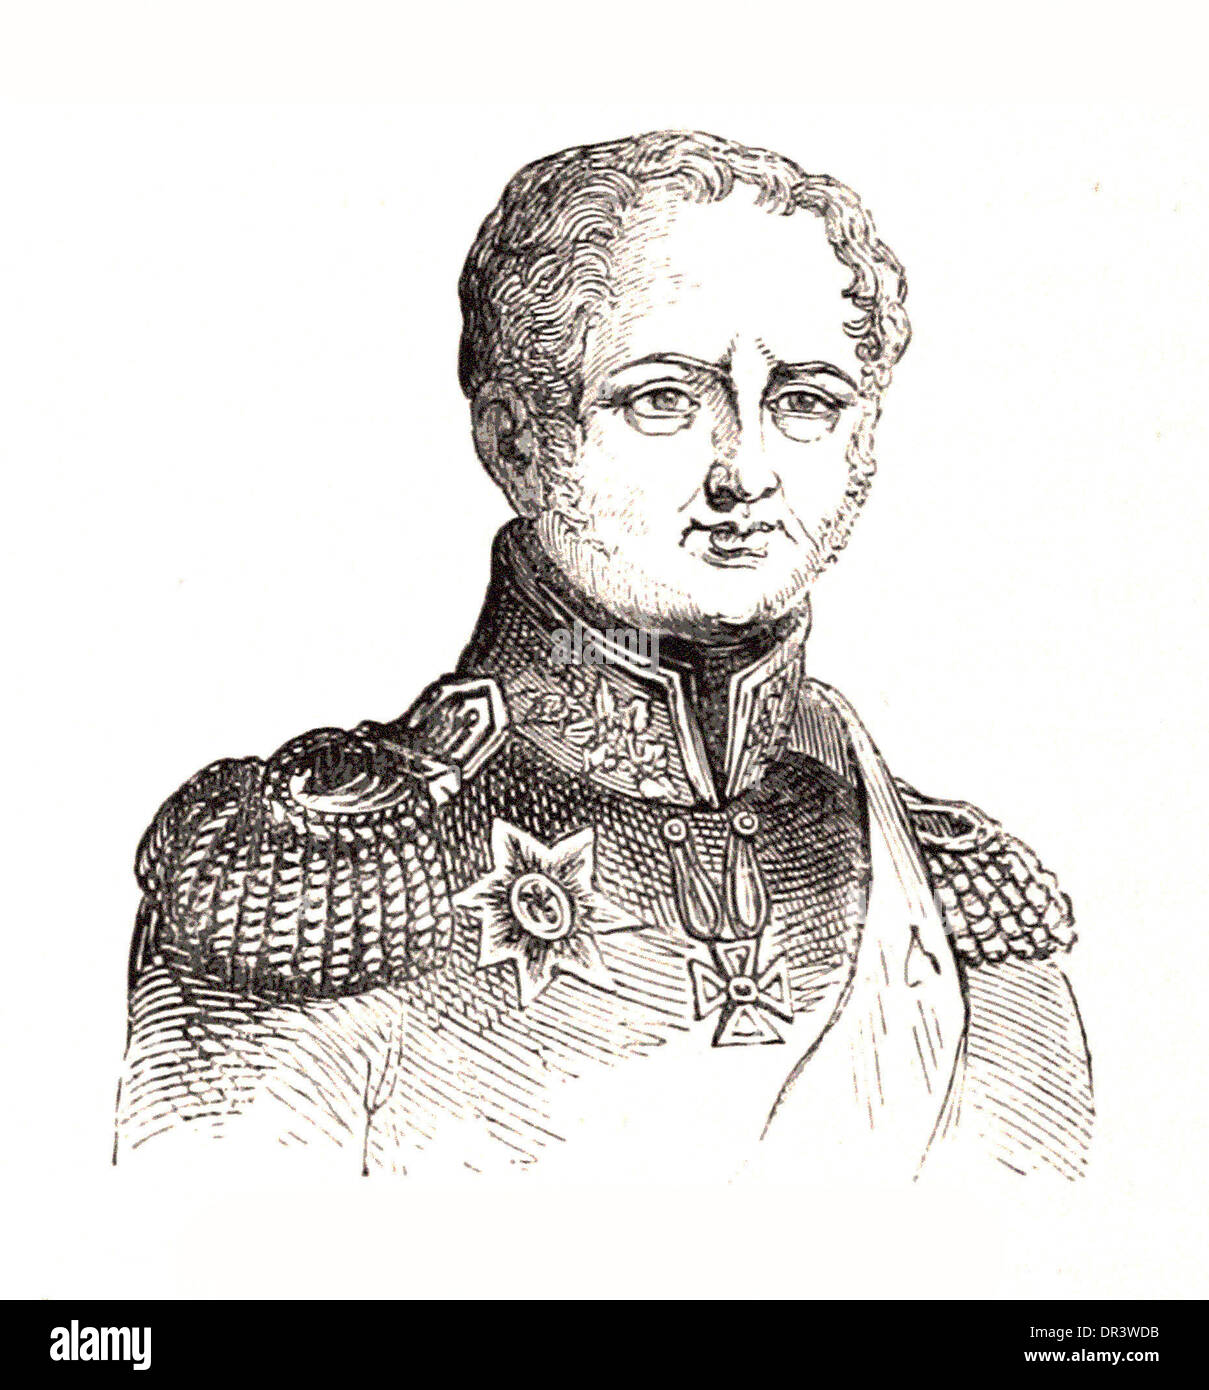 Portrait of Emperor Alexander I (The First) of Russia - Britsh engraving - Stock Image